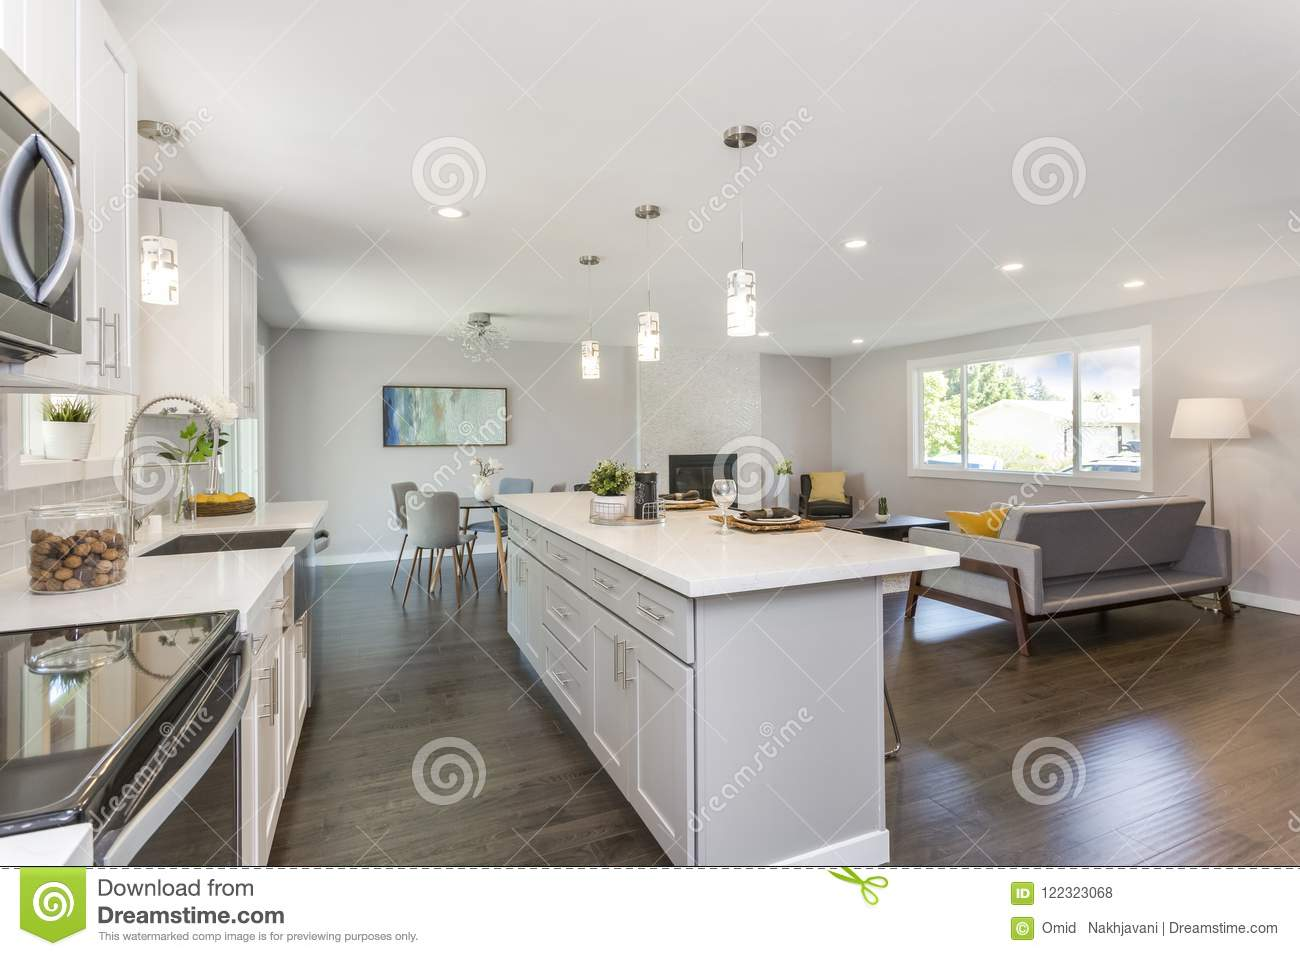 Gorgeous Kitchen With Open Concept Floorplan Stock Photo Image Of Hardwood Indoor 122323068